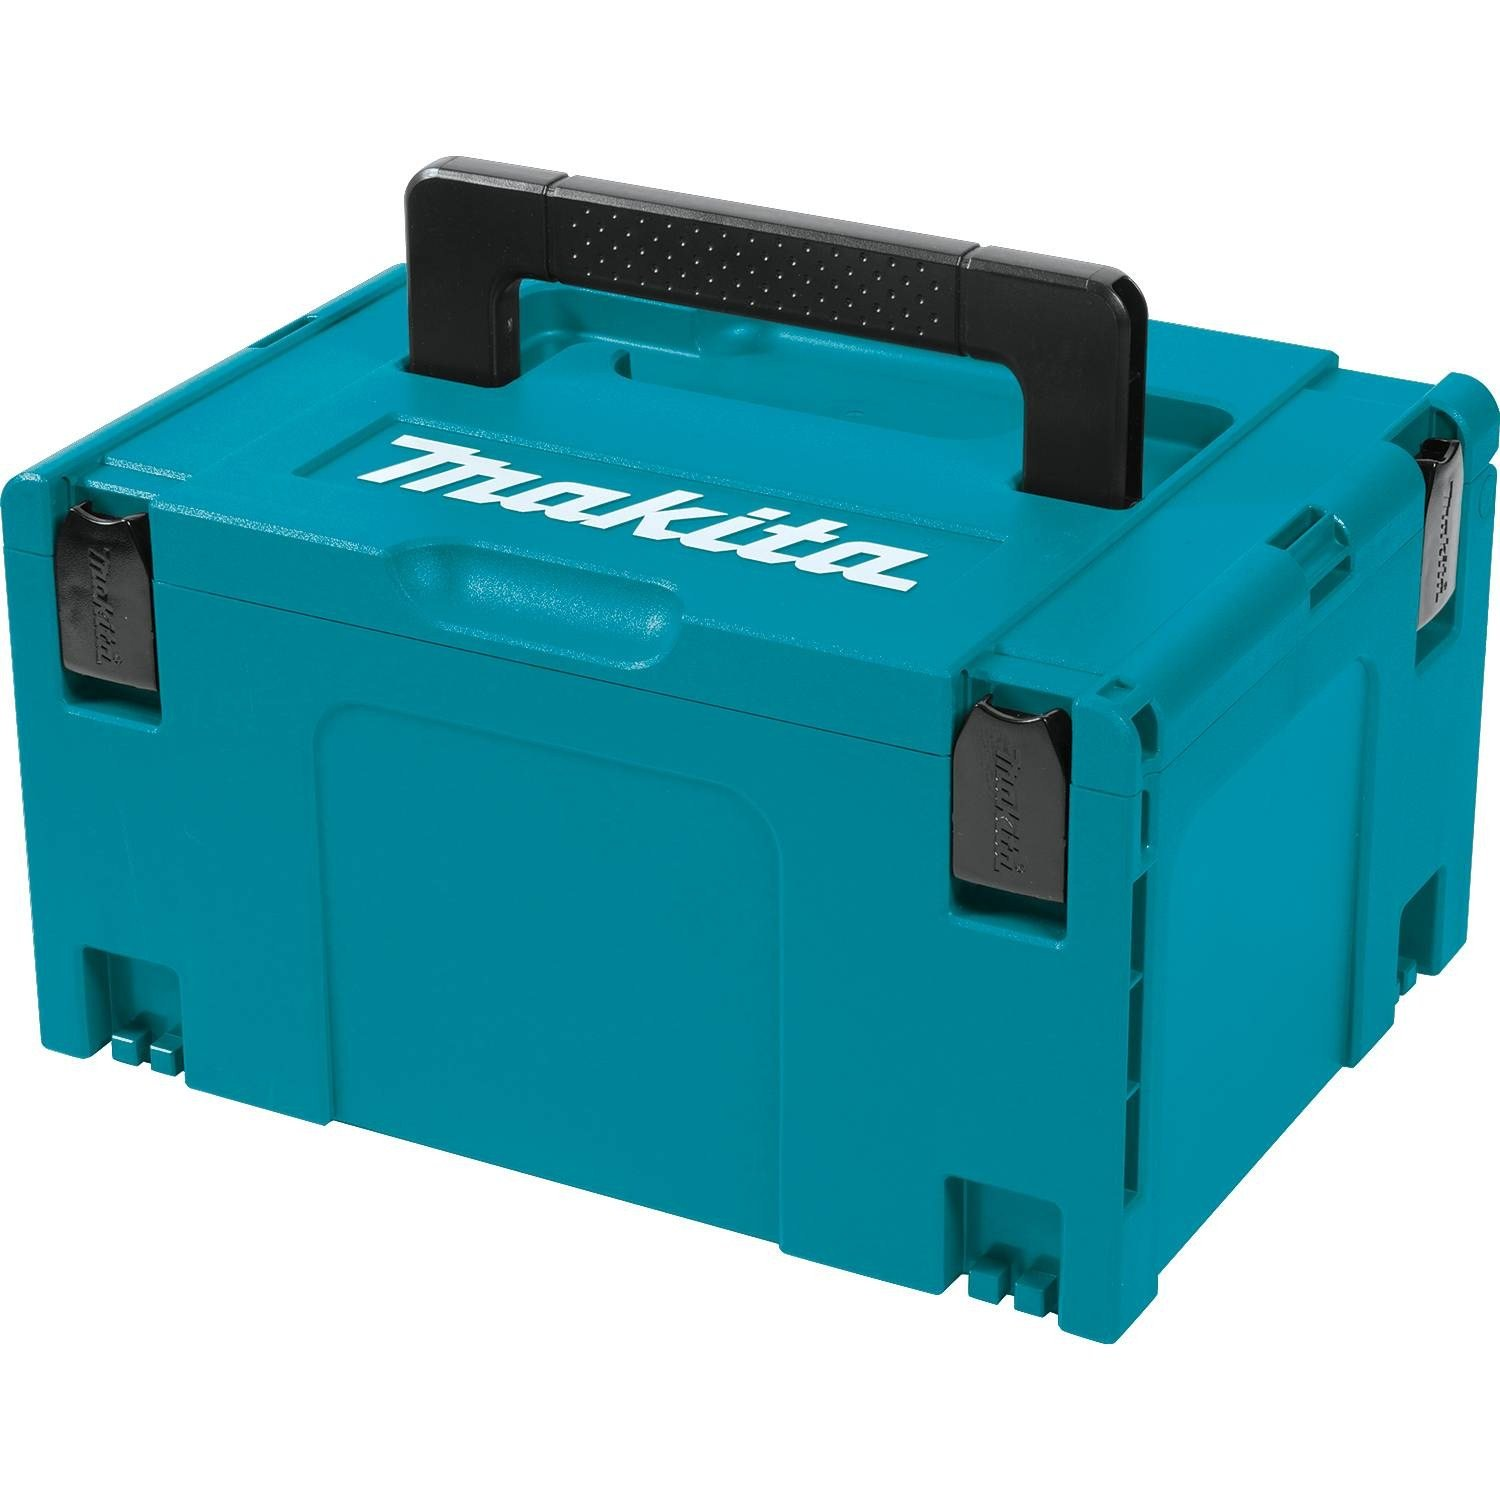 Makita 197212-5 Interlocking Case, Large/8-1/2'' x 15-1/2'' x 11-5/8'' by Makita